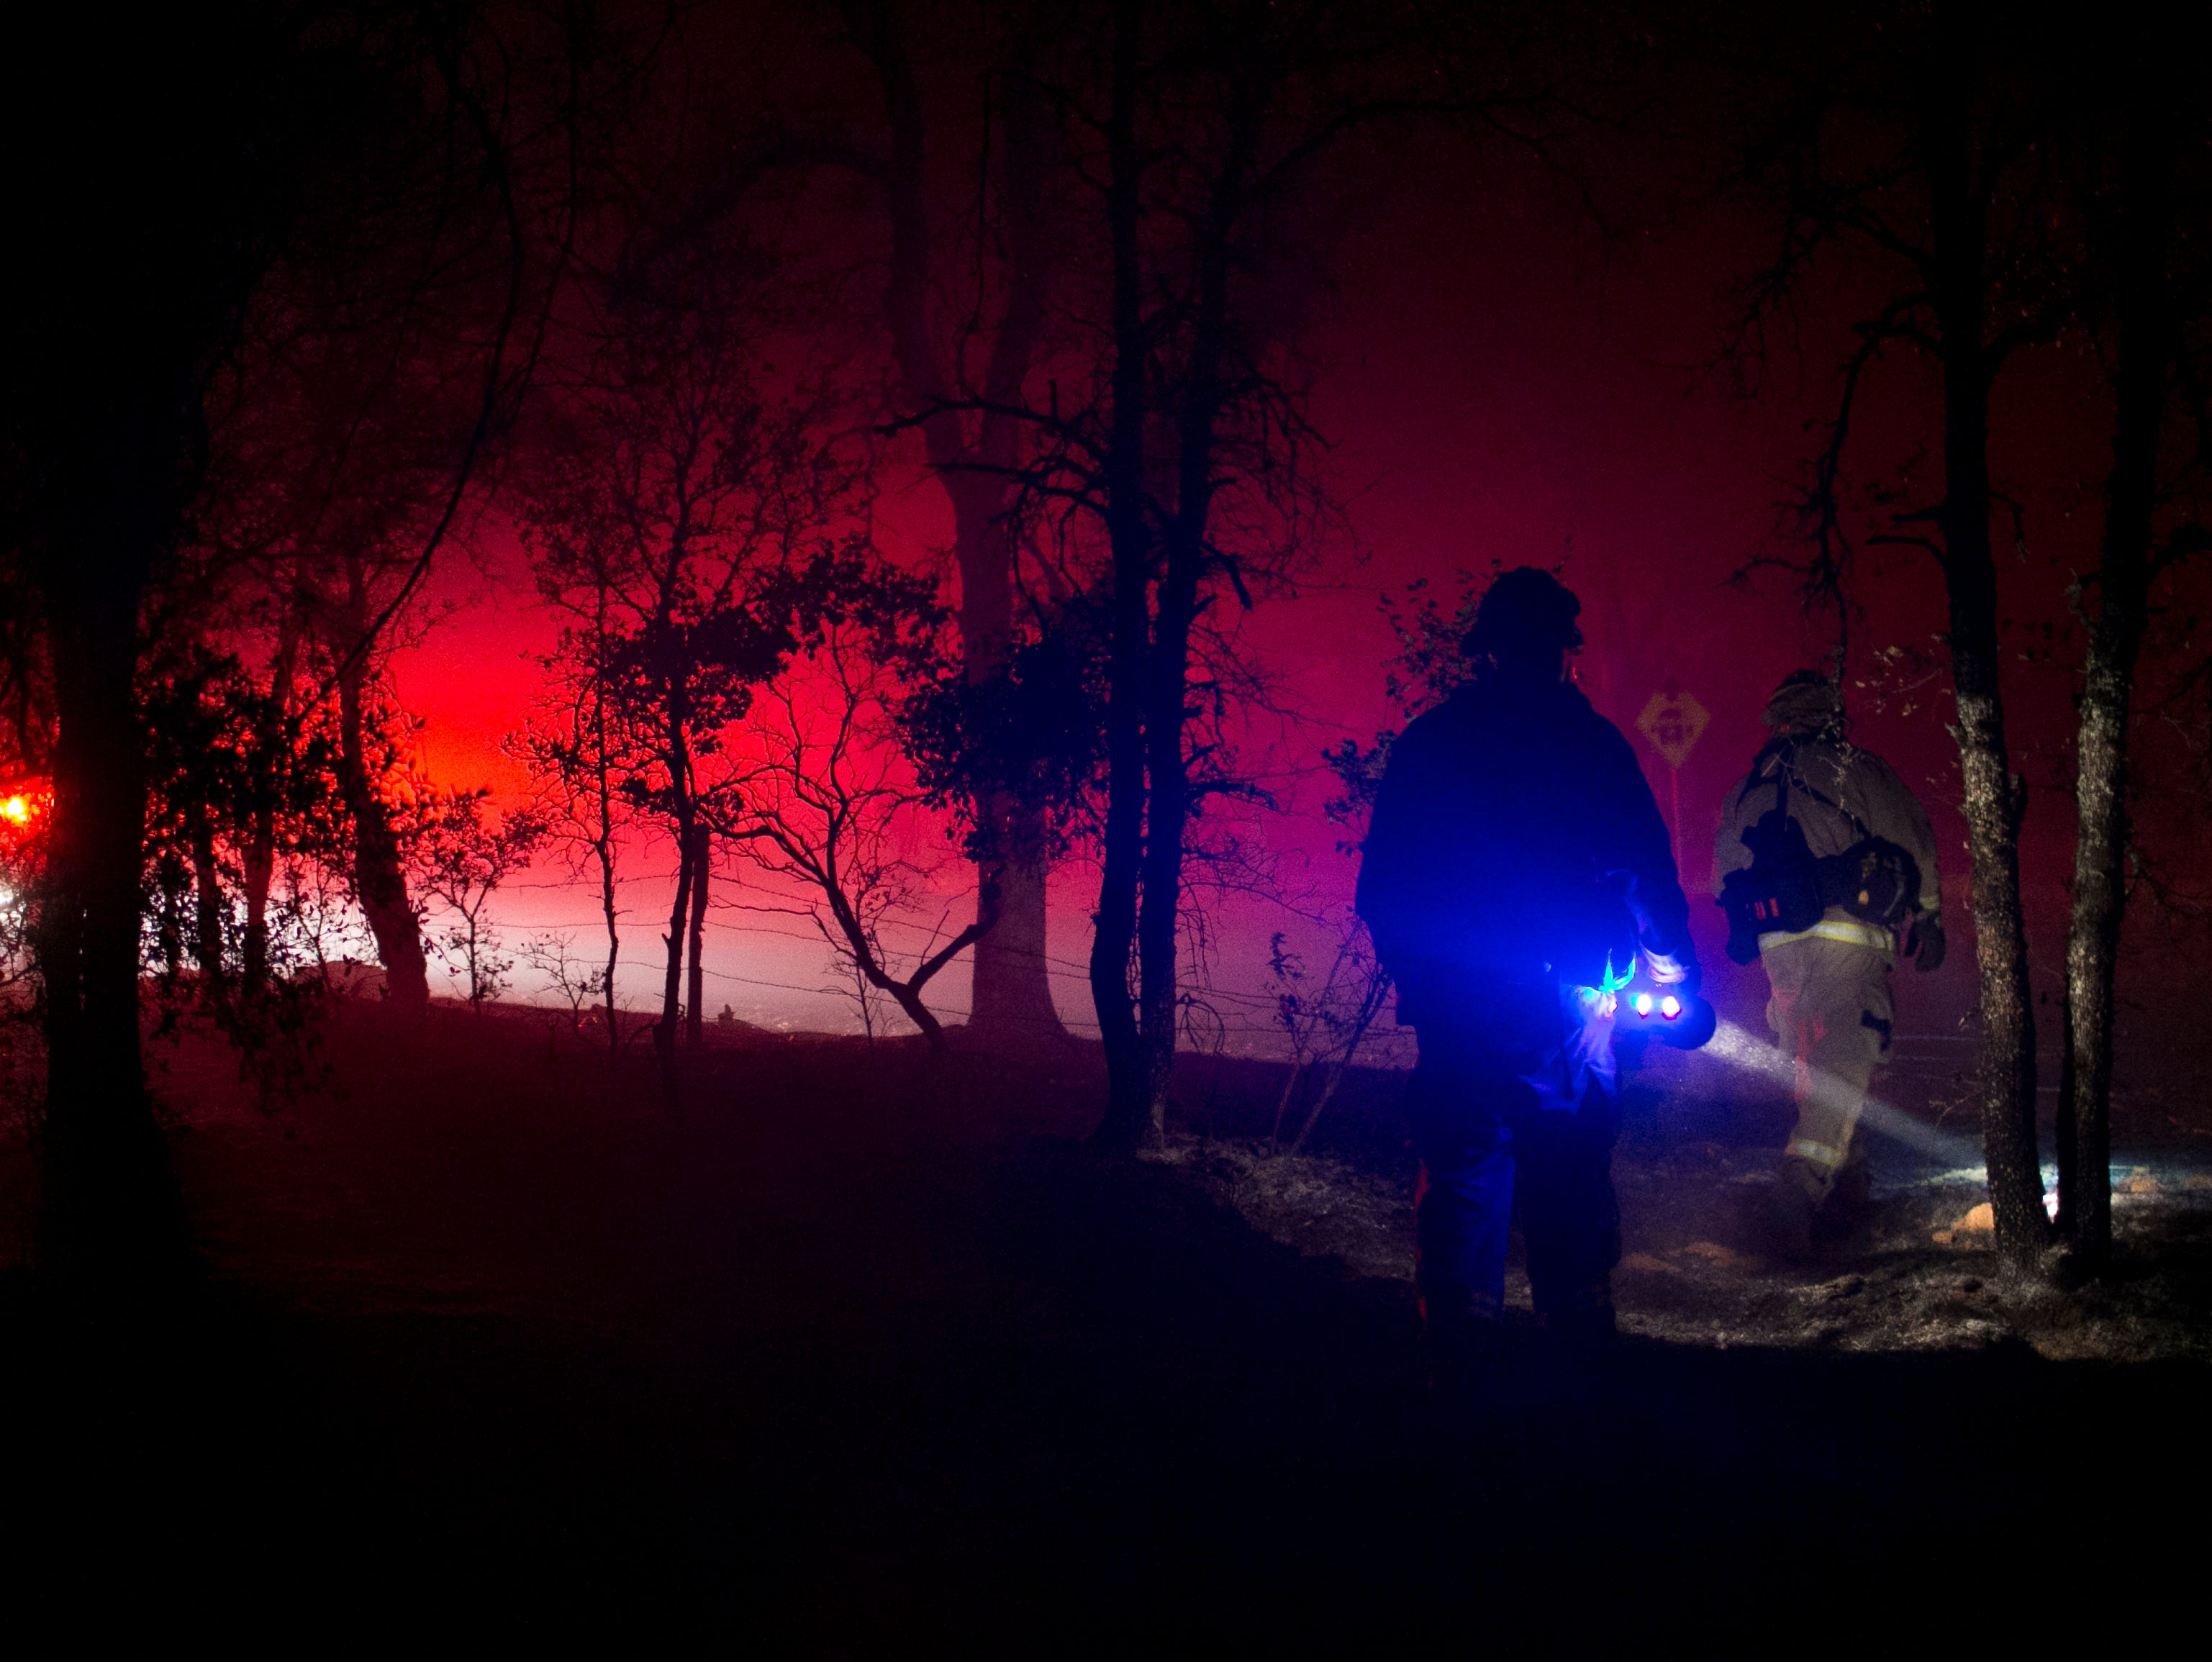 Firemen walk through a dark forest with headlamps looking for hot spots during the Camp Fire on Nov. 12, in Butte Valley, Calif.